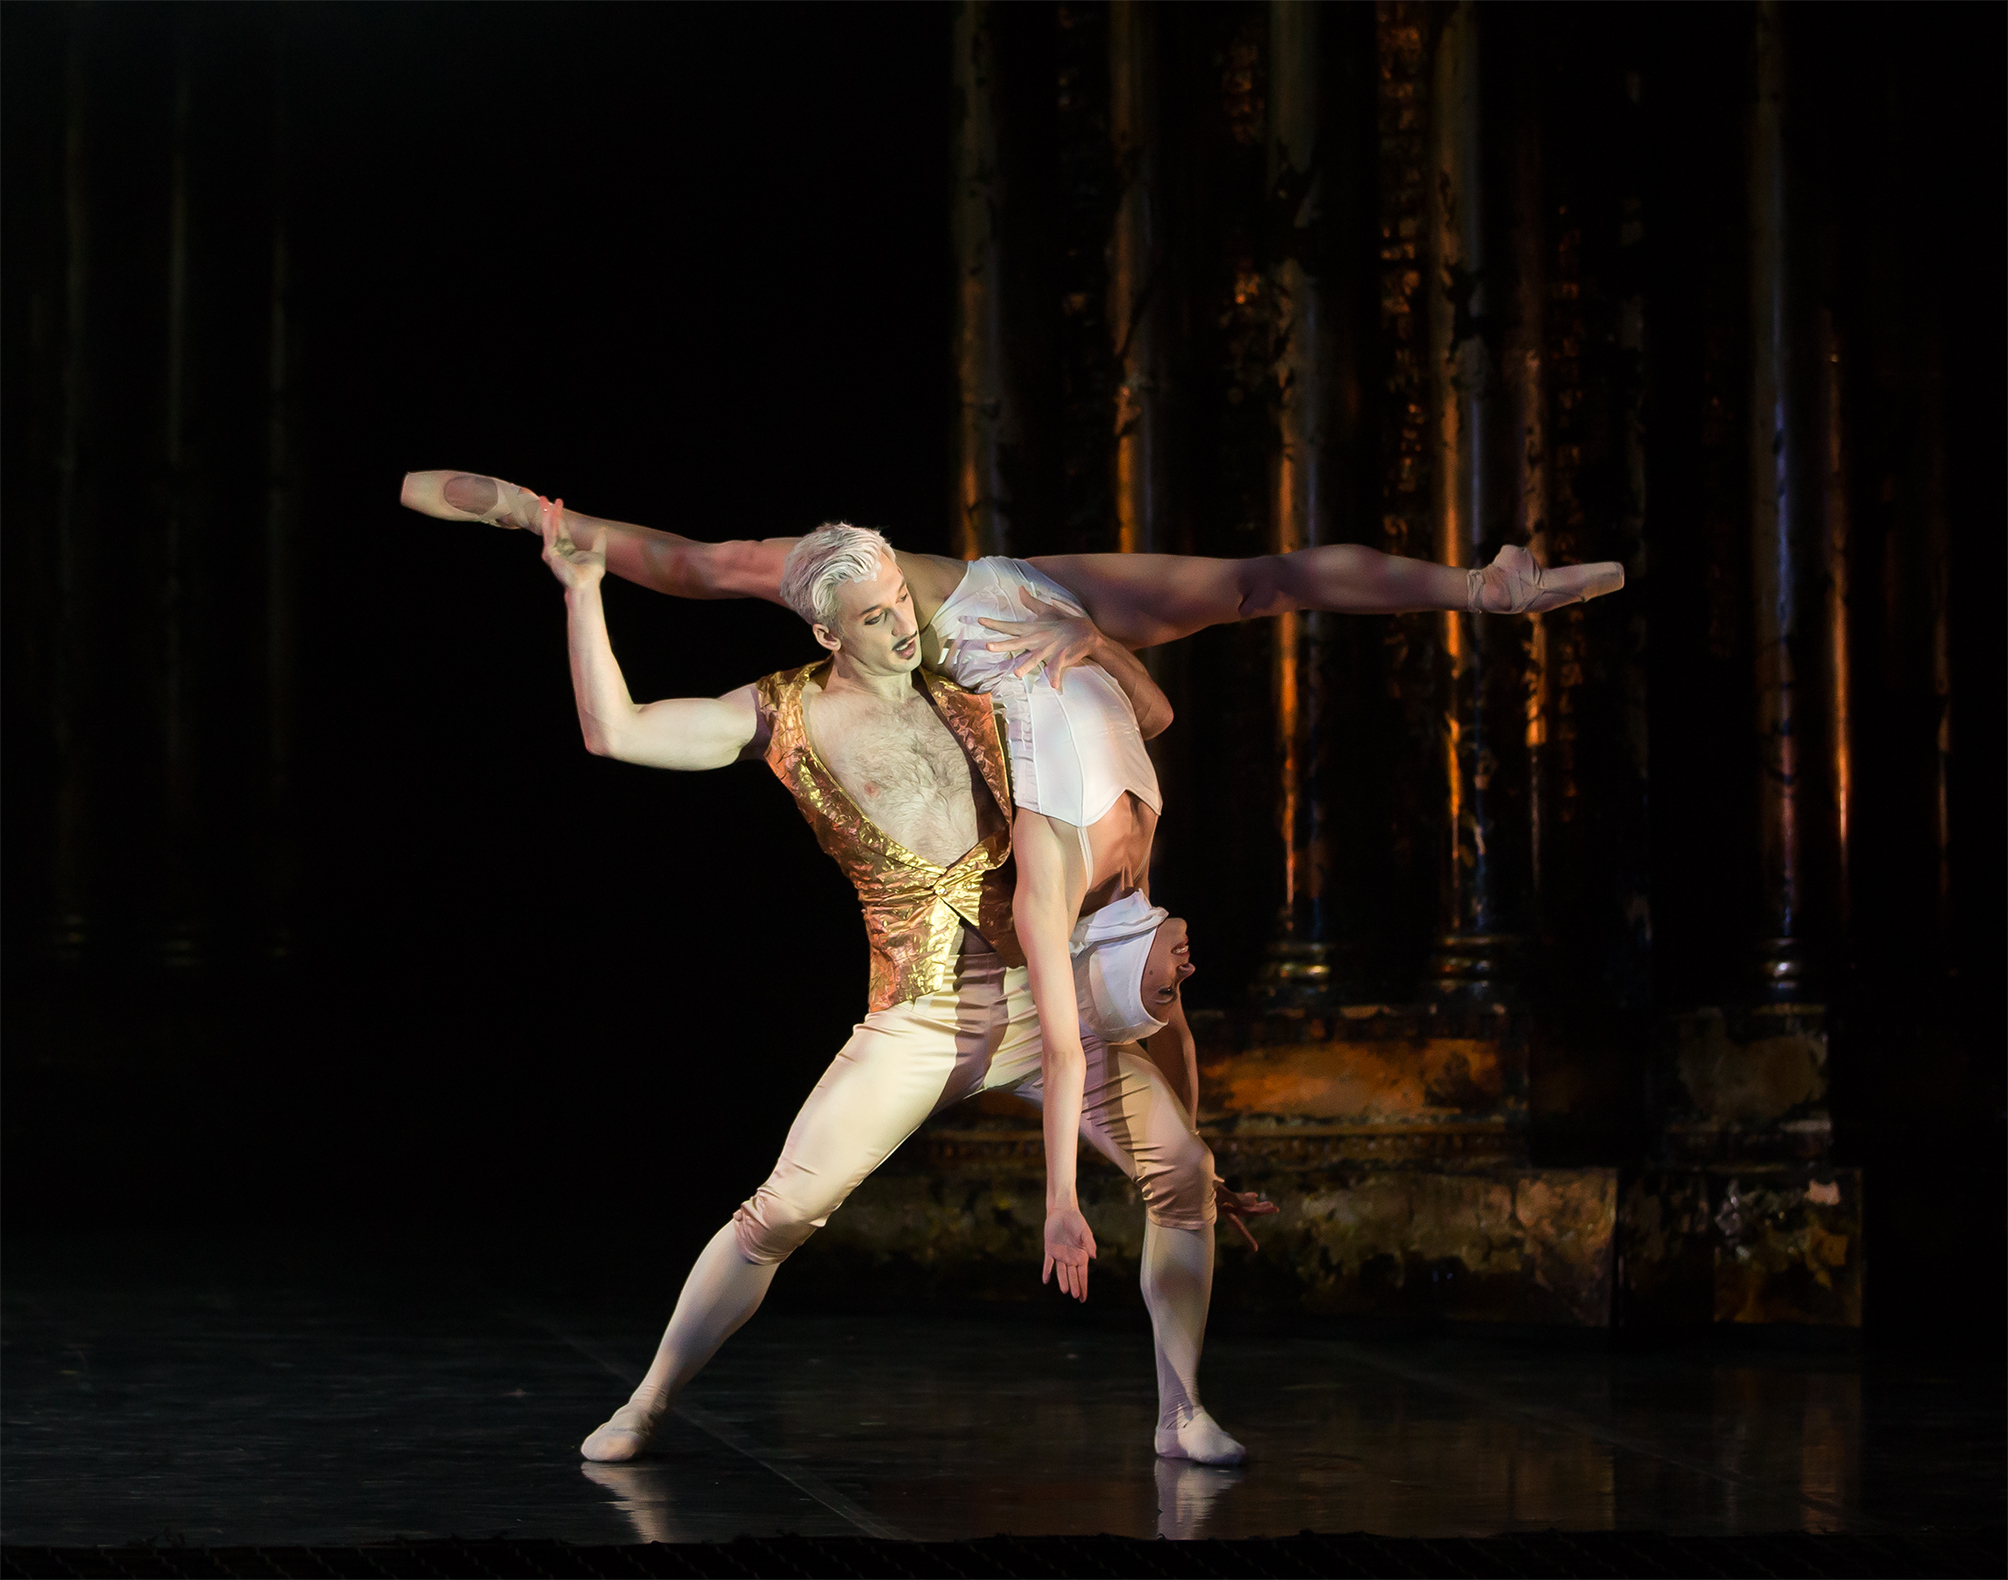 Northern Ballet's Casanova. Giuliano Contadini as Casanova and Ailen Ramos Betancourt as MM. Photo by Emma Kauldhar.